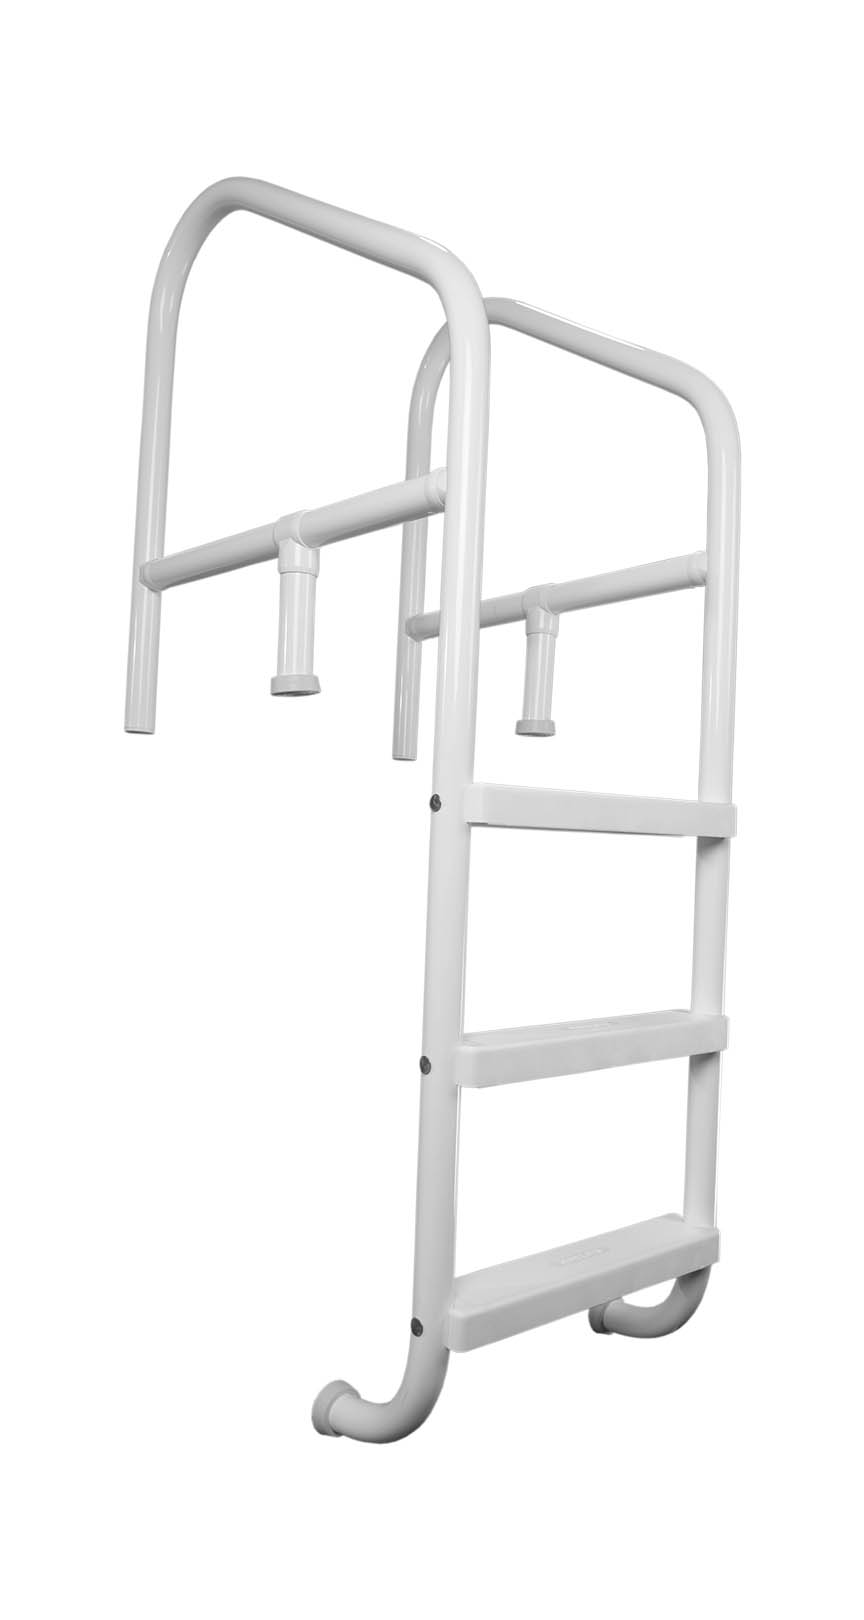 Awesome 36 Inch Swimming Pool Ladder